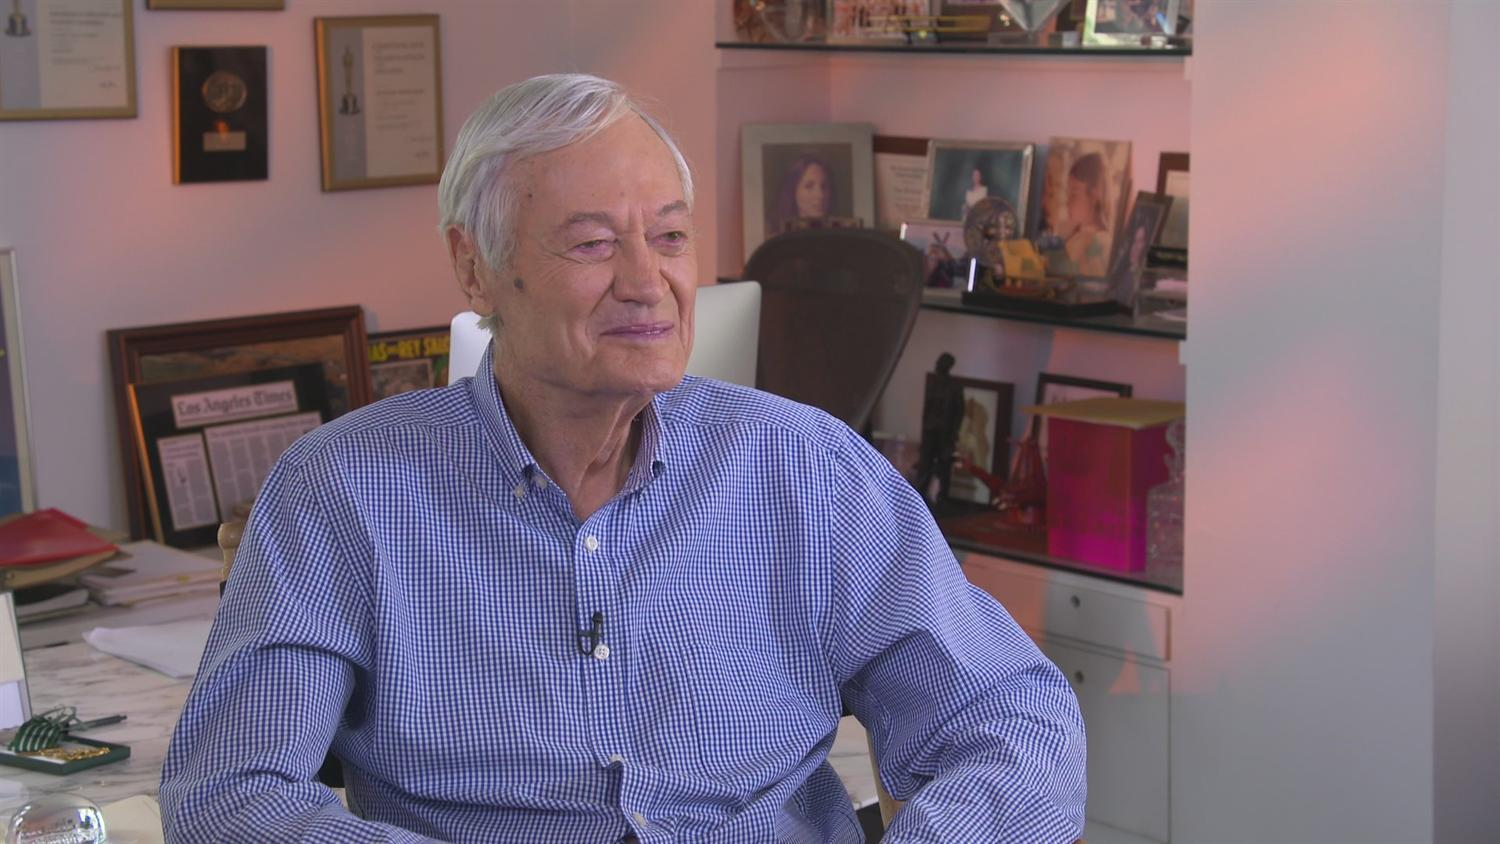 The Fantastic Four: Roger Corman on His Unreleased 1994 Movie